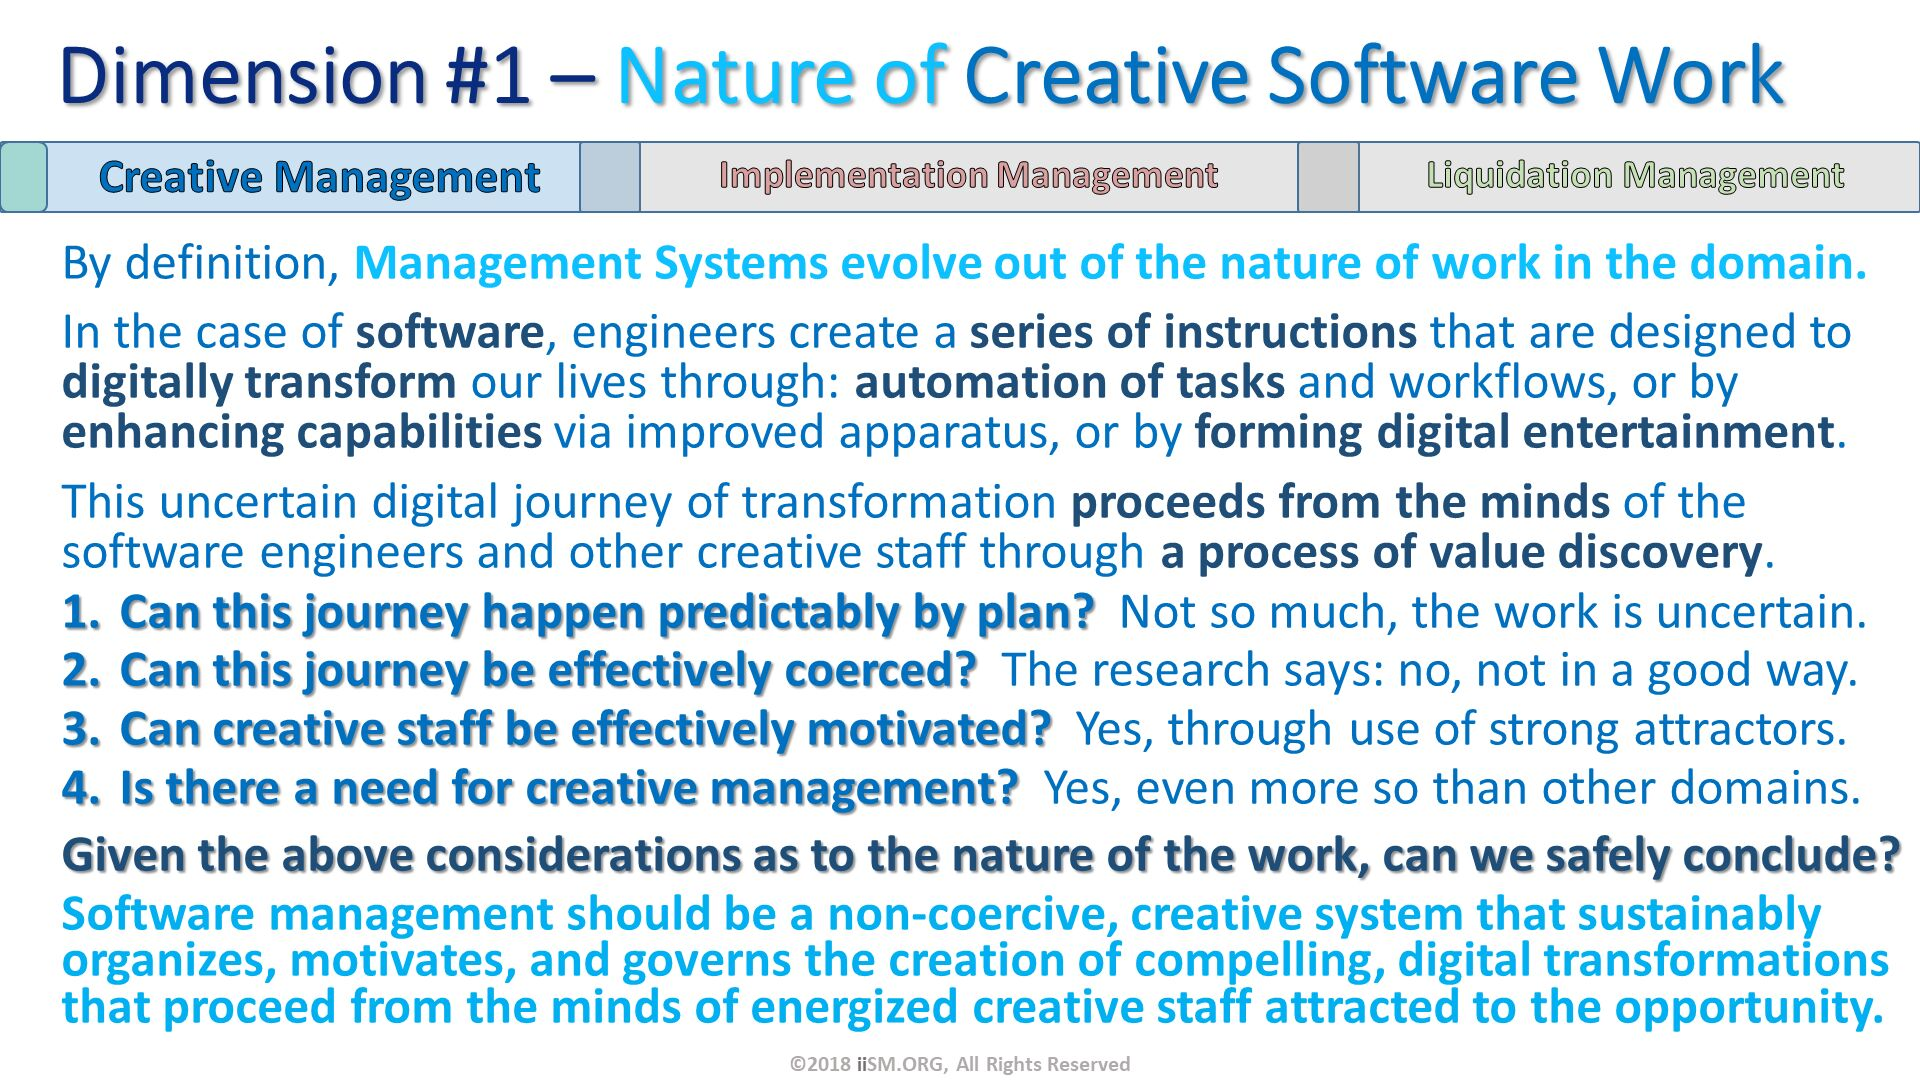 By definition, Management Systems evolve out of the nature of work in the domain. In the case of software, engineers create a series of instructions that are designed to digitally transform our lives through: automation of tasks and workflows, or by enhancing capabilities via improved apparatus, or by forming digital entertainment. This uncertain digital journey of transformation proceeds from the minds of the software engineers and other creative staff through a process of value discovery. Can this journey happen predictably by plan?  Not so much, the work is uncertain. Can this journey be effectively coerced?  The research says: no, not in a good way. Can creative staff be effectively motivated?  Yes, through use of strong attractors. Is there a need for creative management?  Yes, even more so than other domains. Given the above considerations as to the nature of the work, can we safely conclude? Software management should be a non-coercive, creative system that sustainably organizes, motivates, and governs the creation of compelling, digital transformations that proceed from the minds of energized creative staff attracted to the opportunity. Dimension #1 – Nature of Creative Software Work. ©2018 iiSM.ORG, All Rights Reserved.